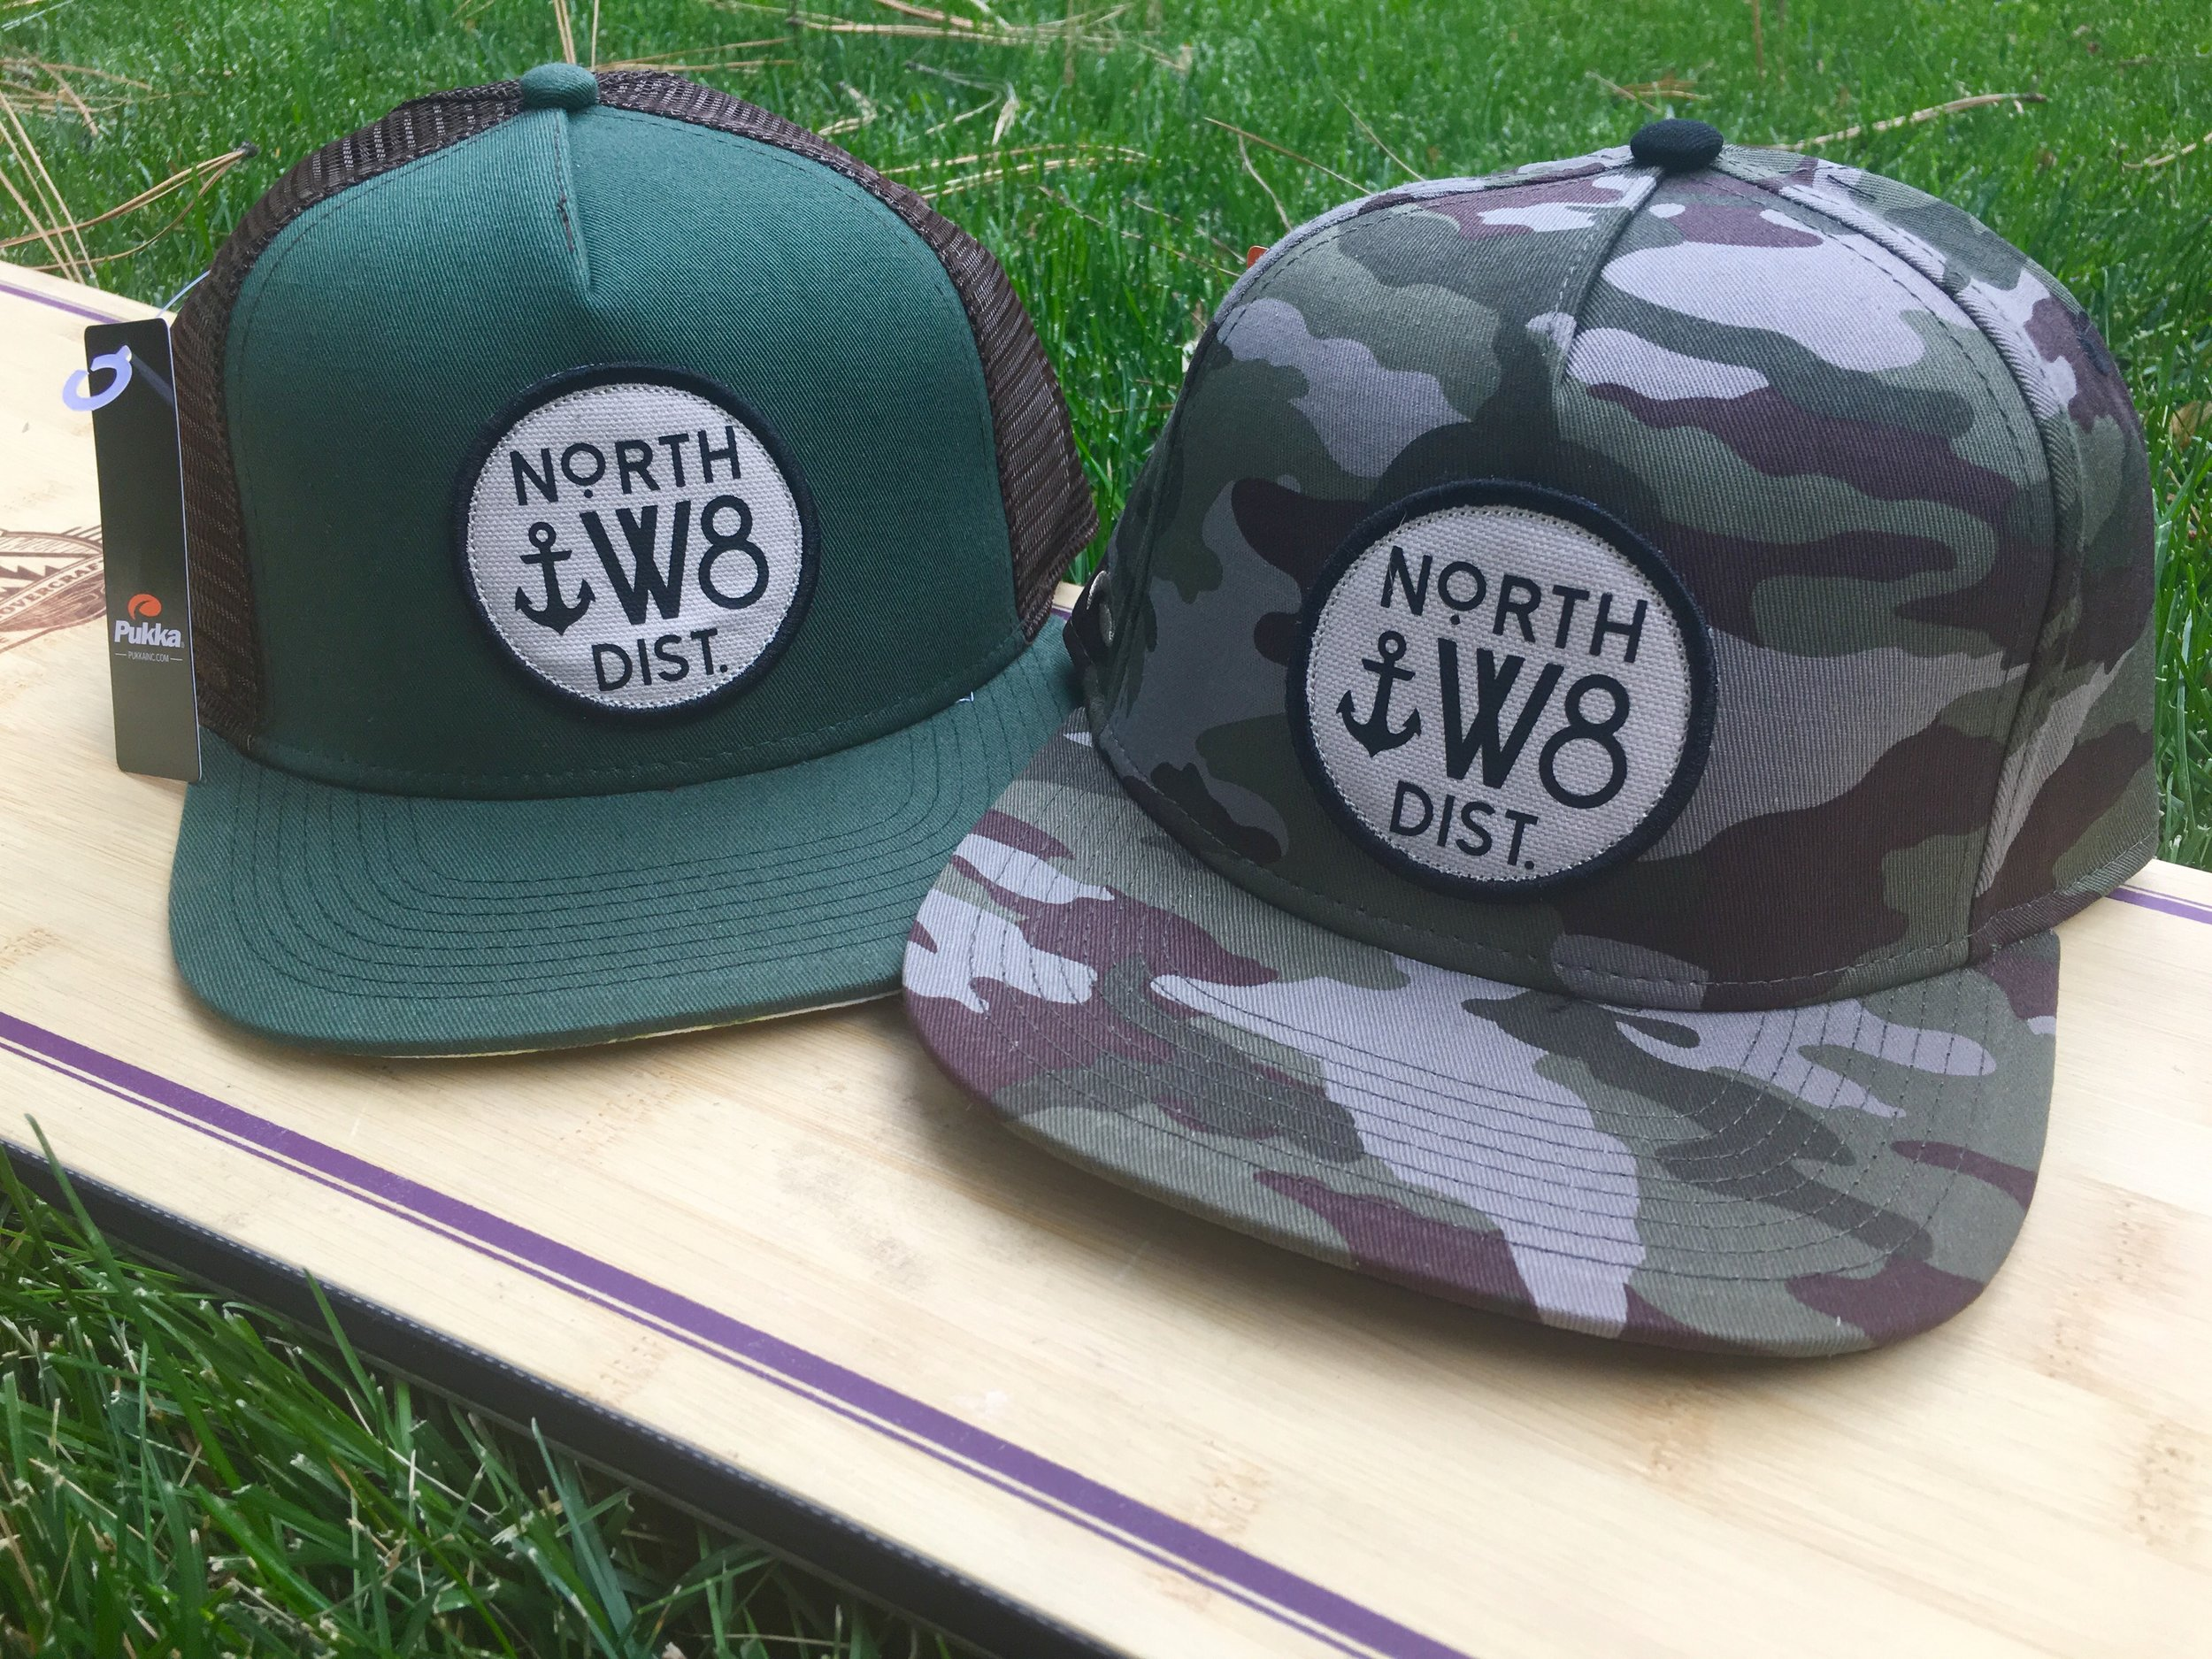 North W8 Distributions logo design